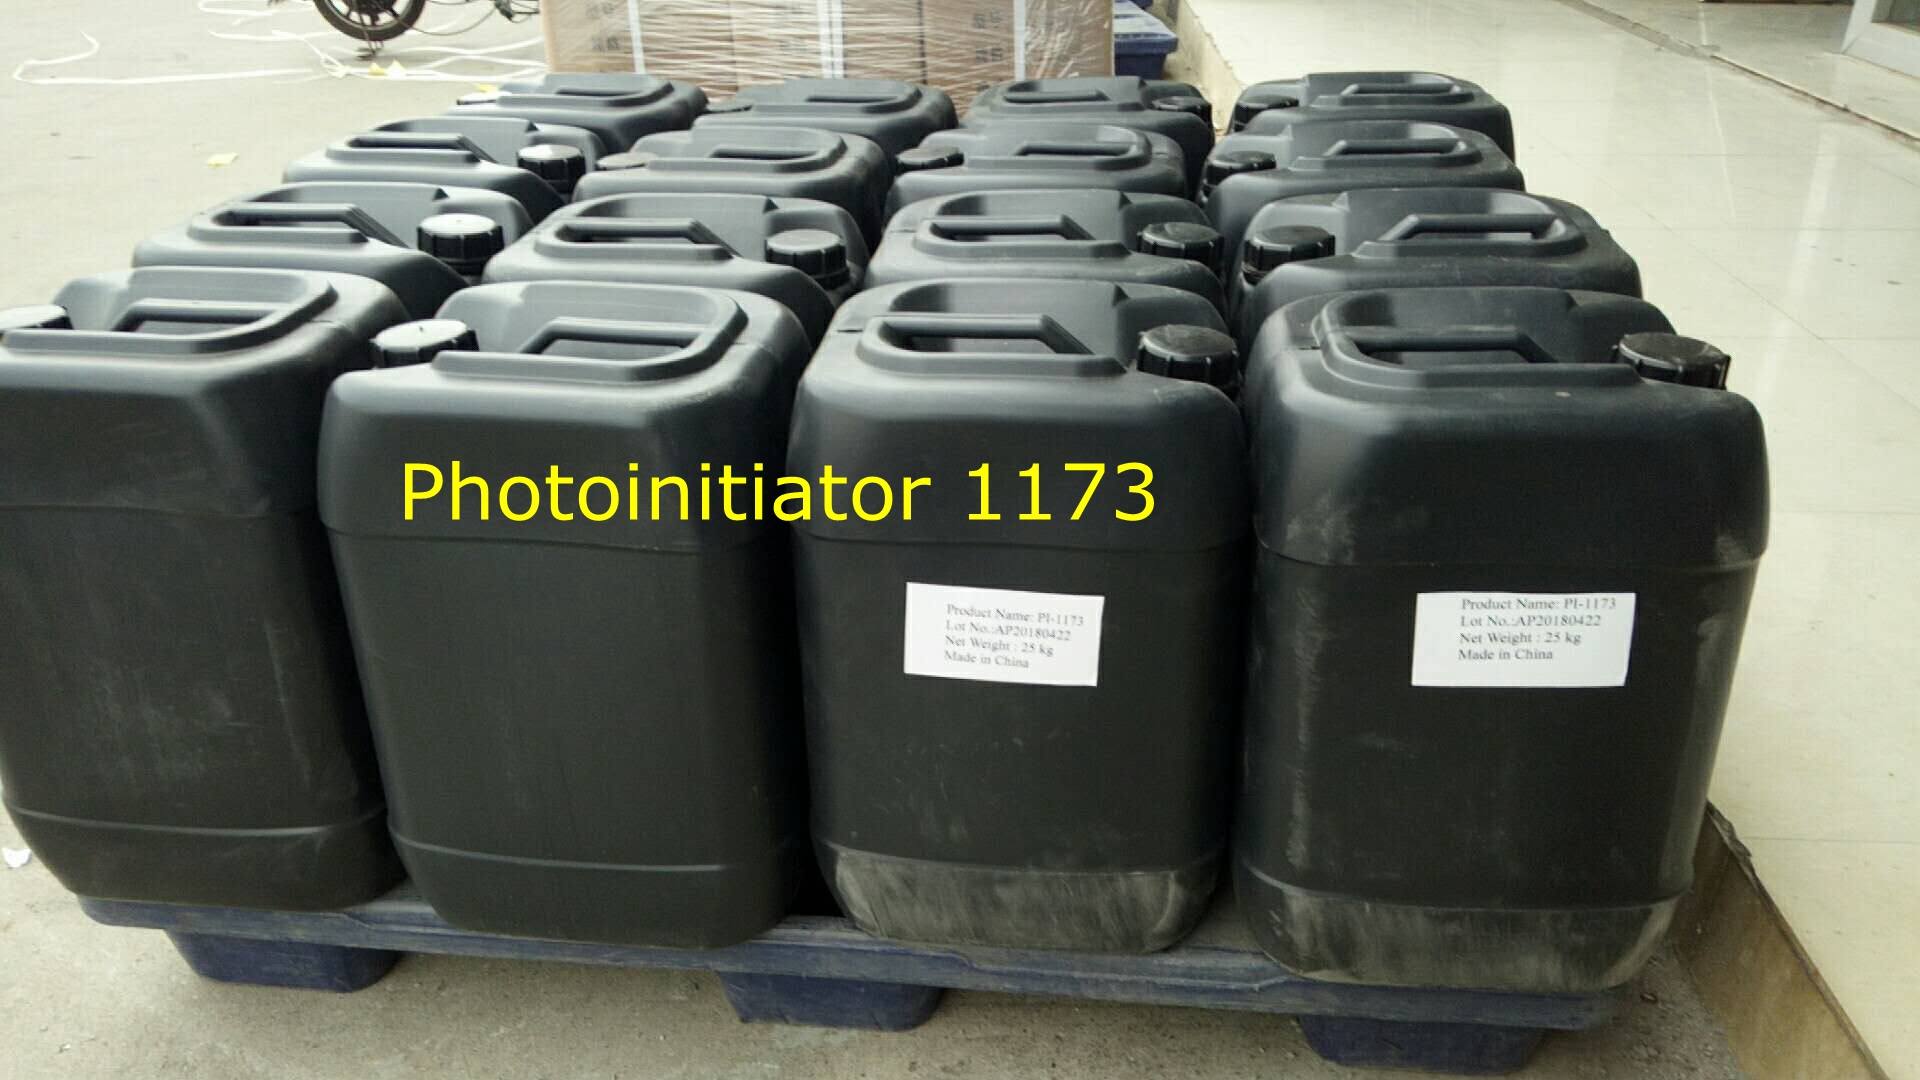 Photoinitiator TPO-L/Ethyl (2,4,6-trimethylbenzoyl) 84434-11-7